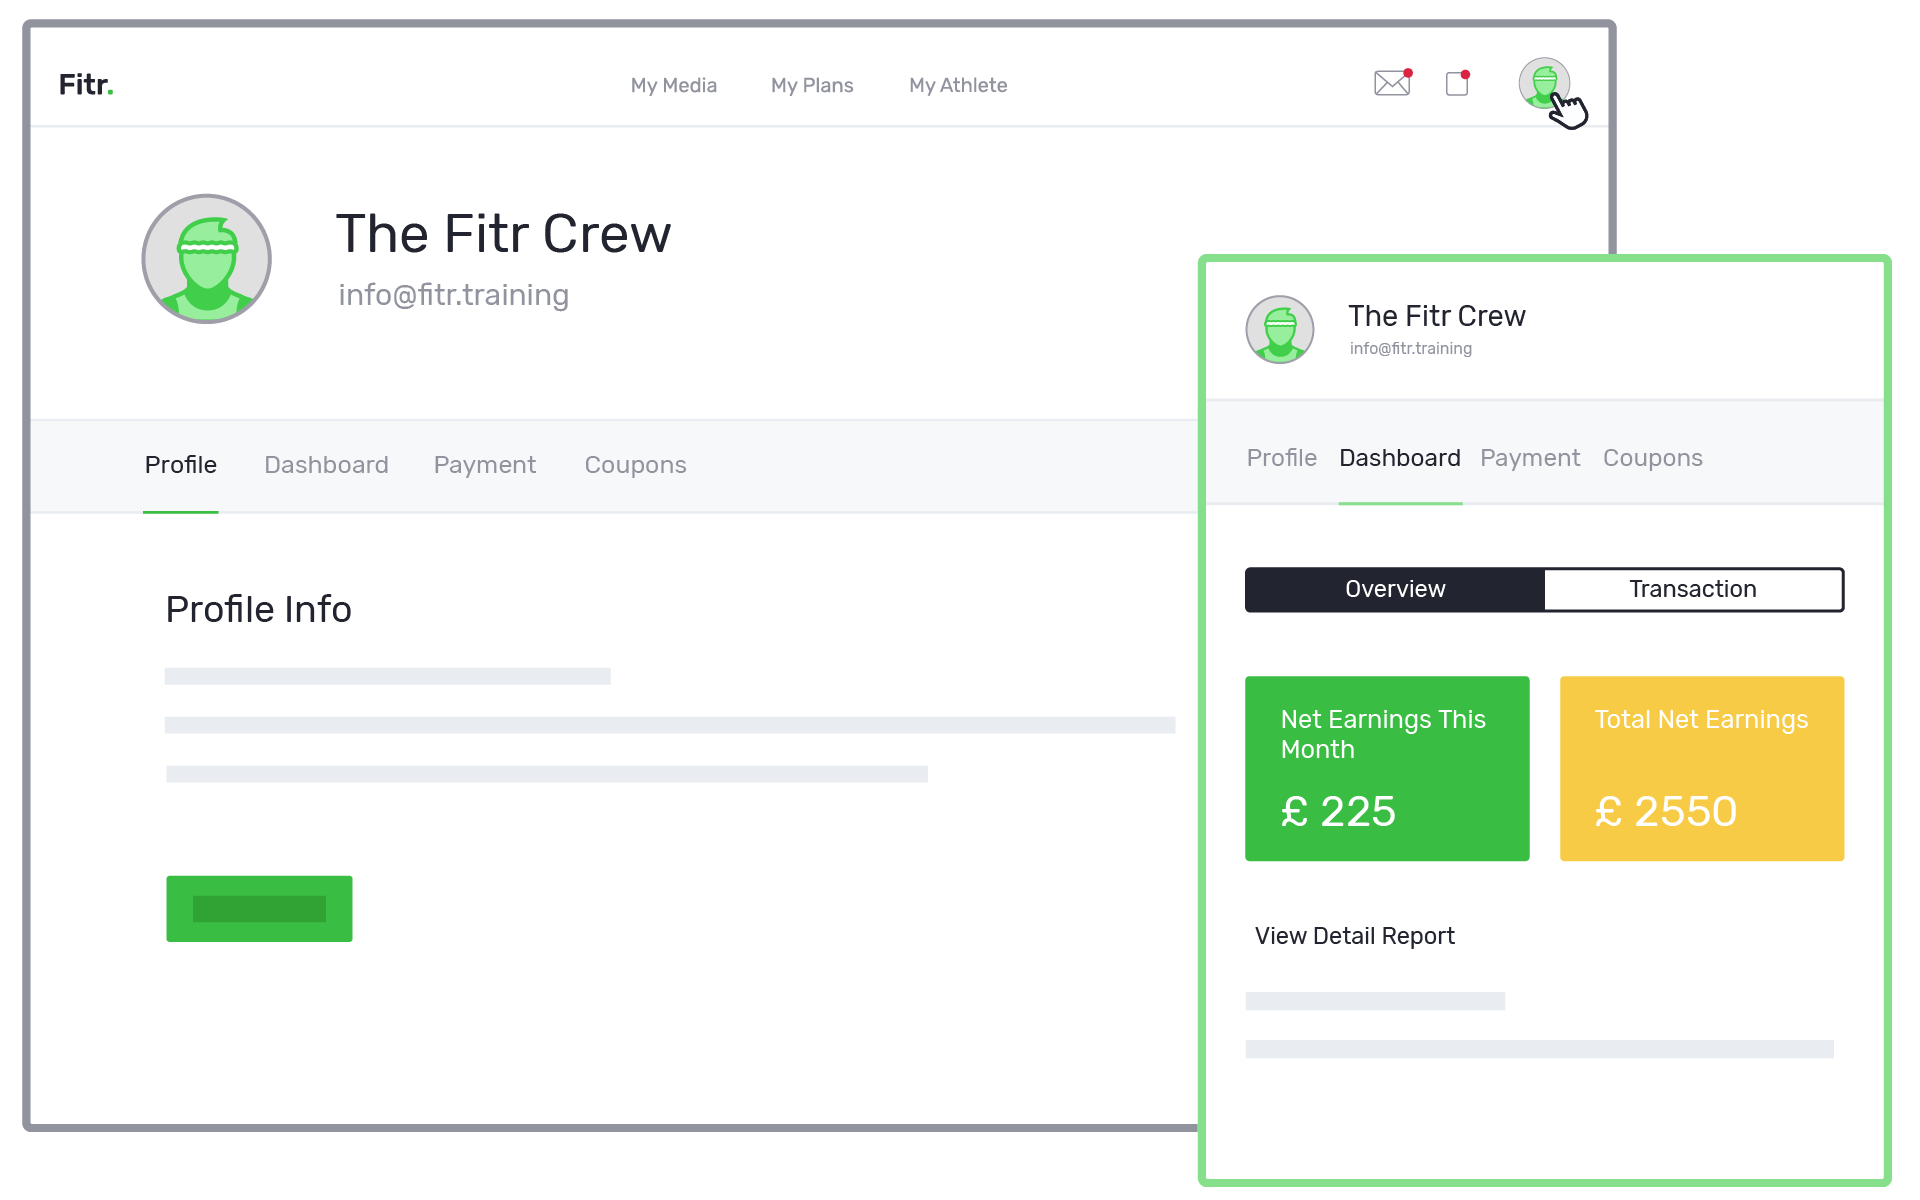 Growing your PT business with Fitr - the online fitness training platform